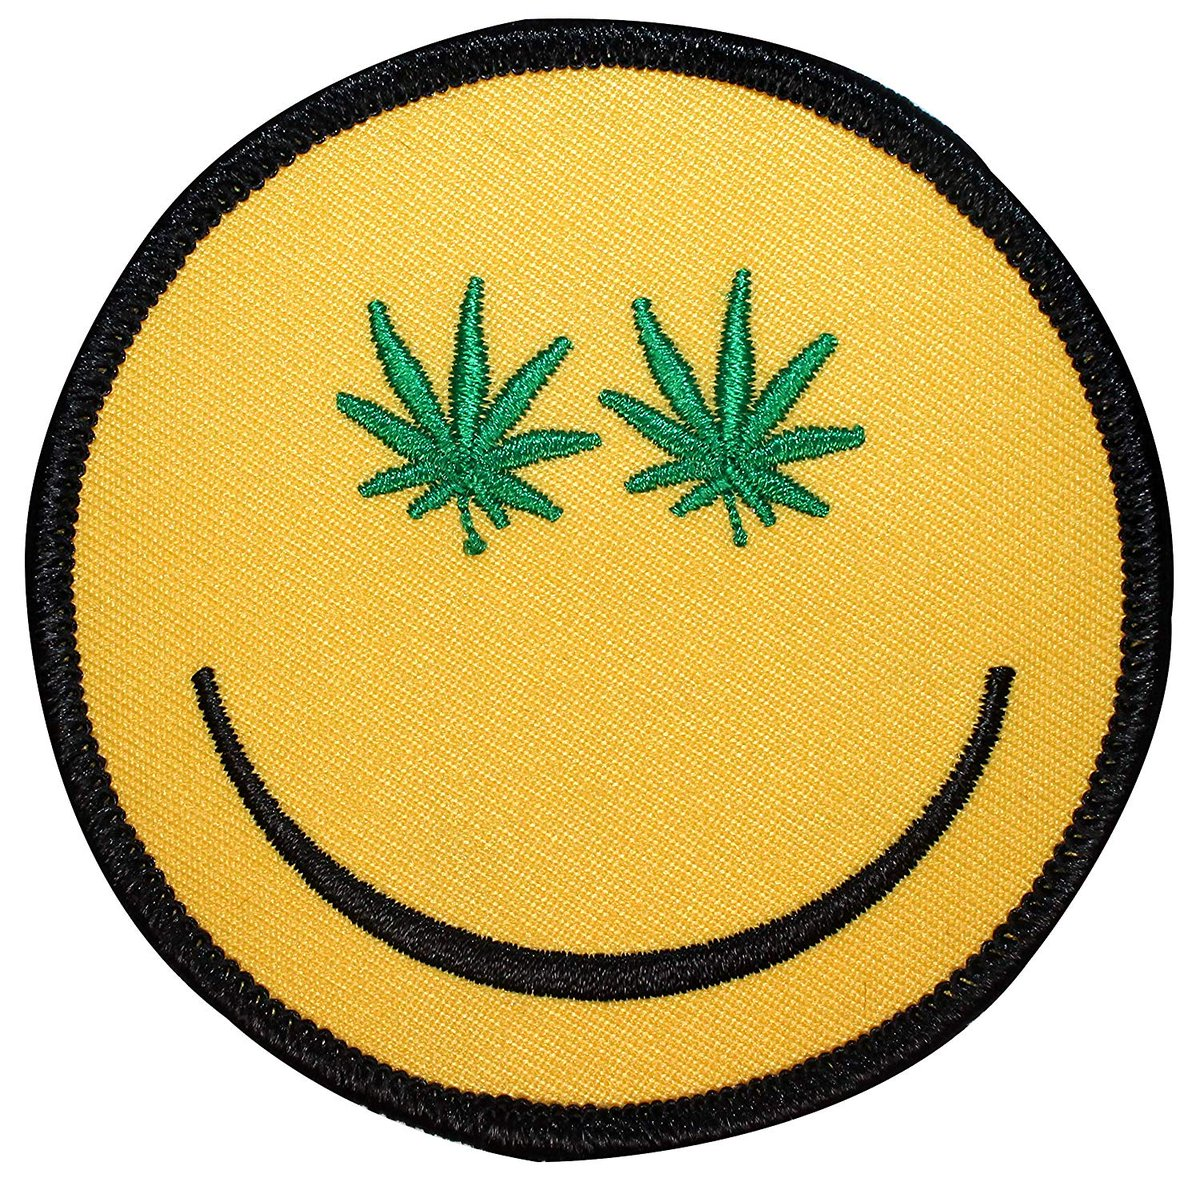 Hey #StonerFam if y'all ain't following @Cptnrwrpnts do yourself a favor and follow her. You won't be disappointed. #StayLifted<br>http://pic.twitter.com/5pLHklKJ3E